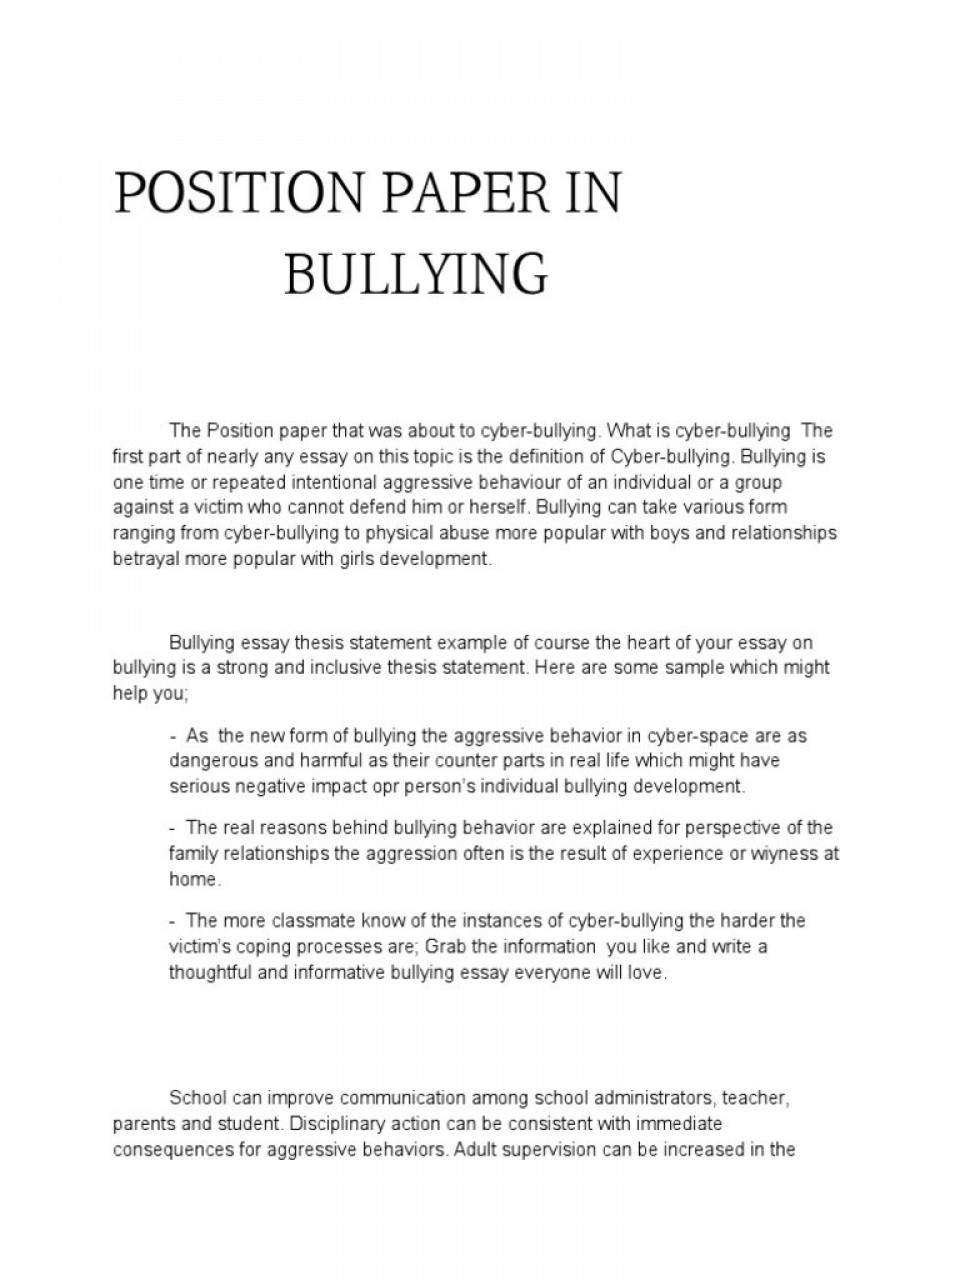 005 Bullying Essay Example Good Conclusion For Academic Writing Service Cause And Effect On In Awful Persuasive Ideas Argumentative Thesis 960